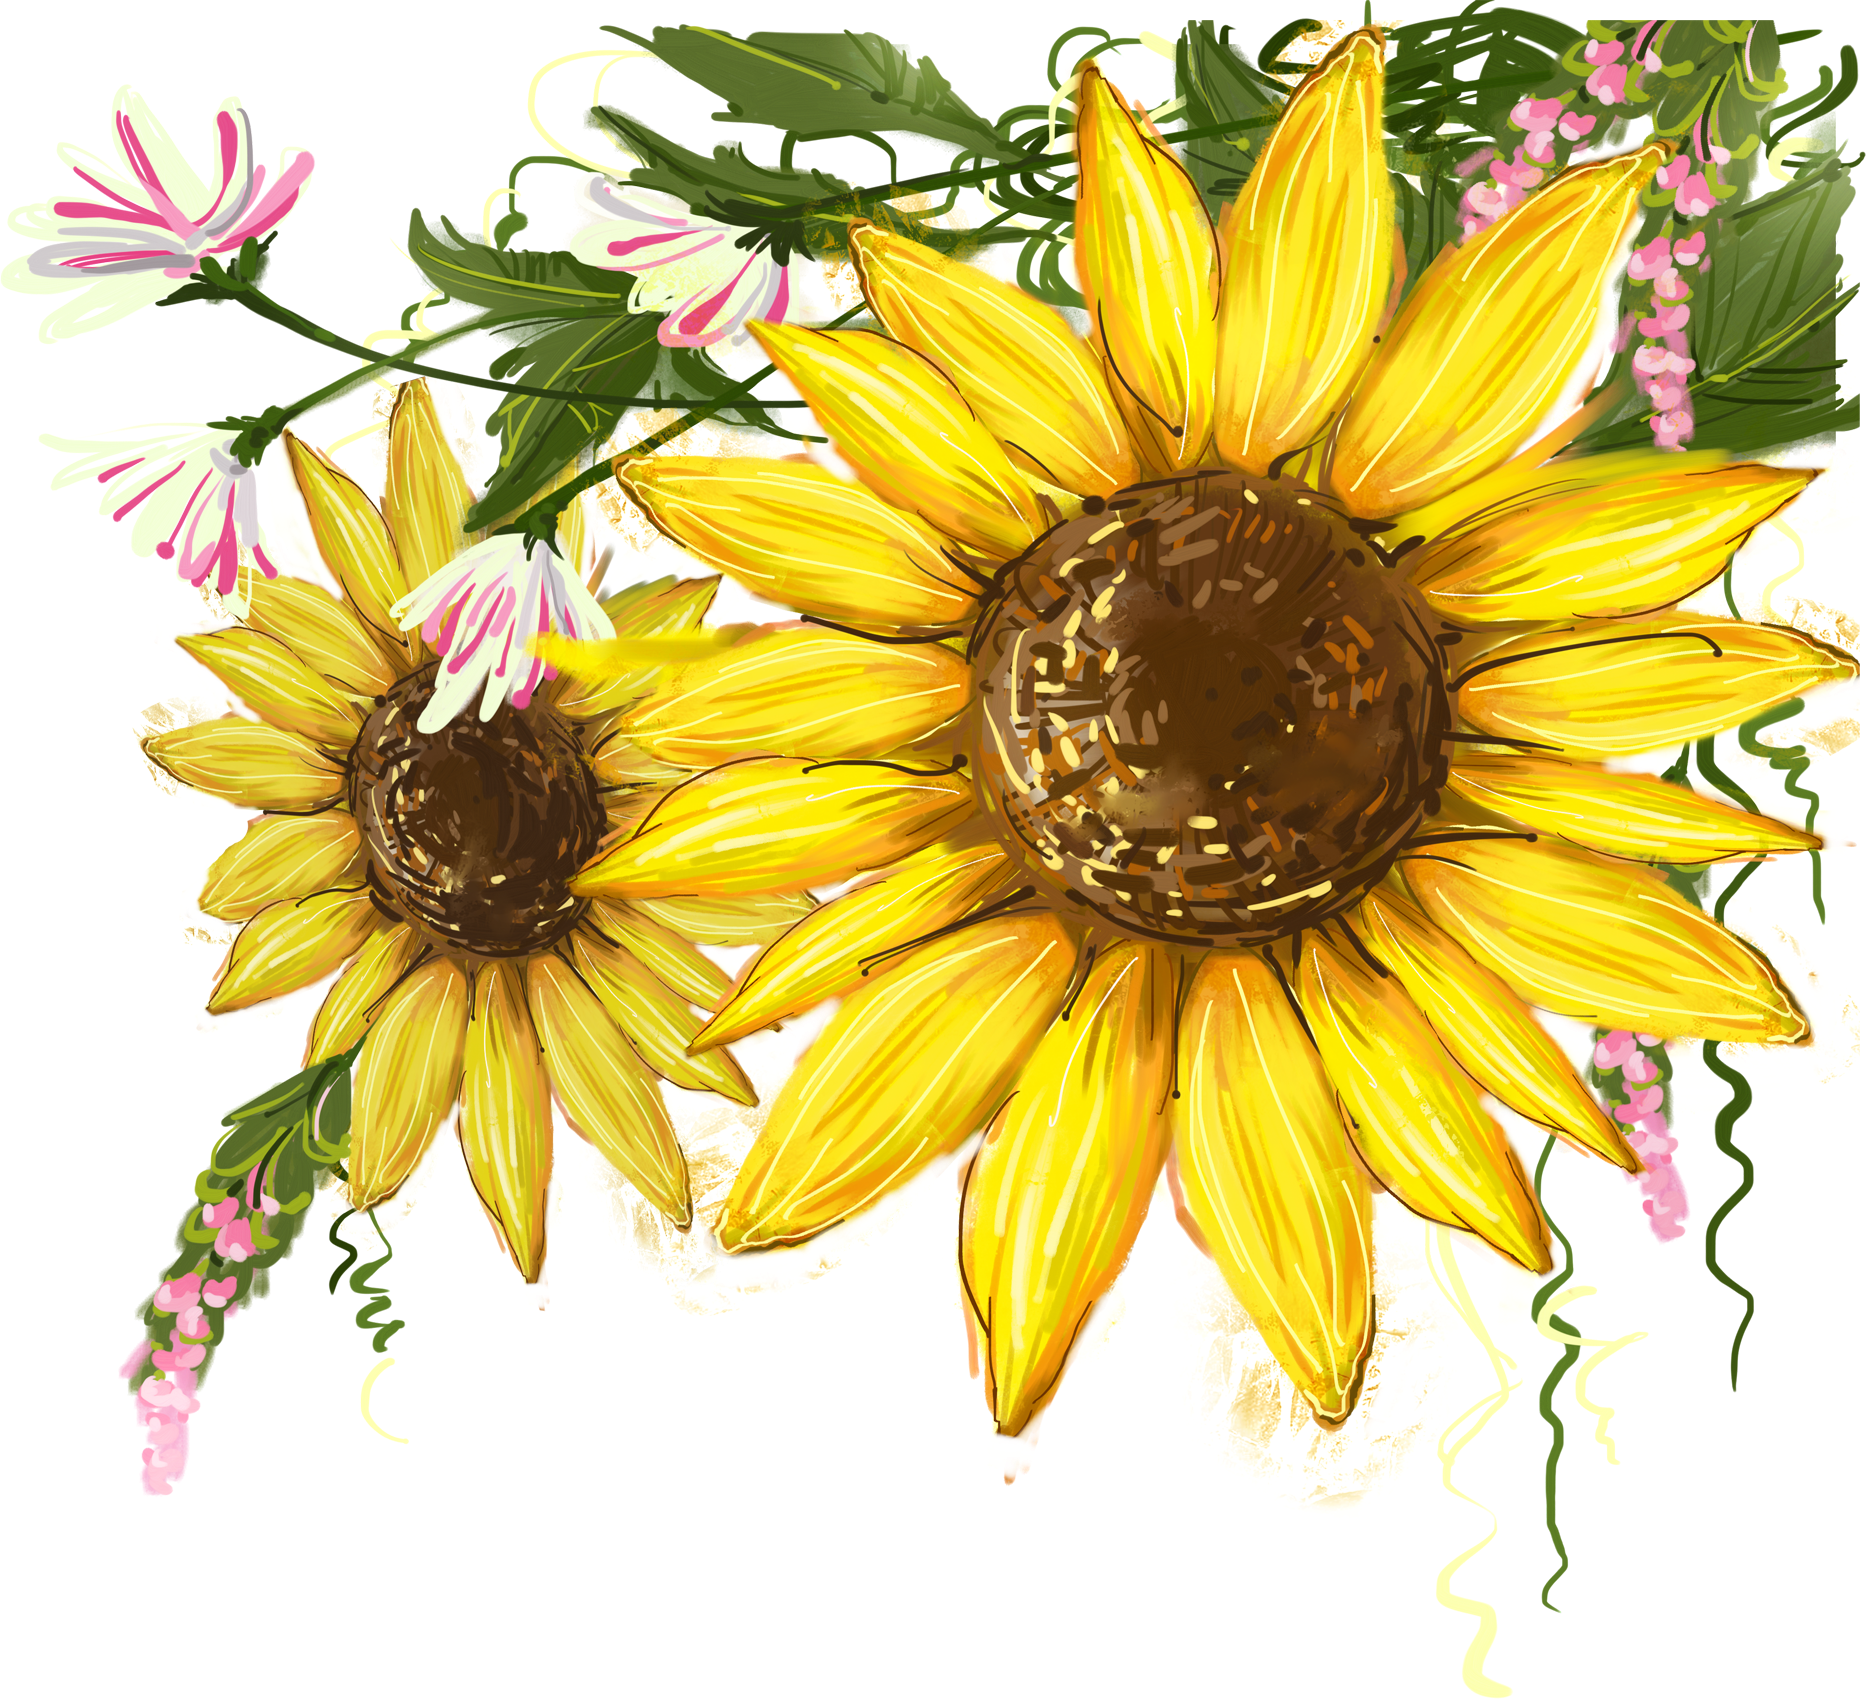 Sunflower watercolor clipart jpg royalty free library Common sunflower Clip art Image Watercolor   Sunflower PNG ... jpg royalty free library